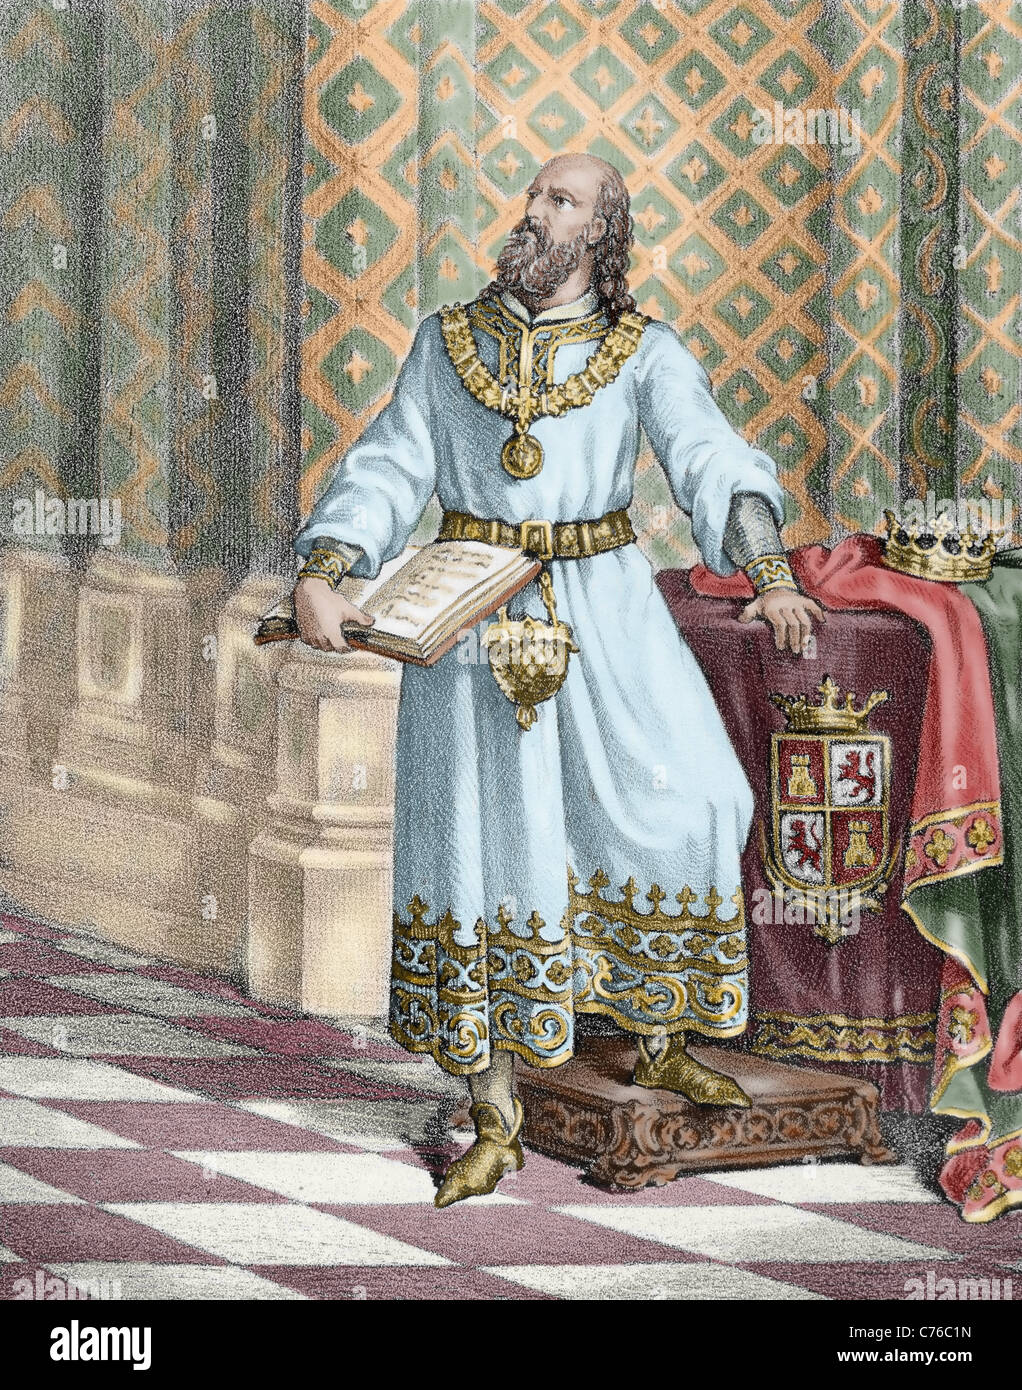 Alfonso X of Castile, called The Wise (1221-1284). King of Castile and Leon (1252-1284). - Stock Image